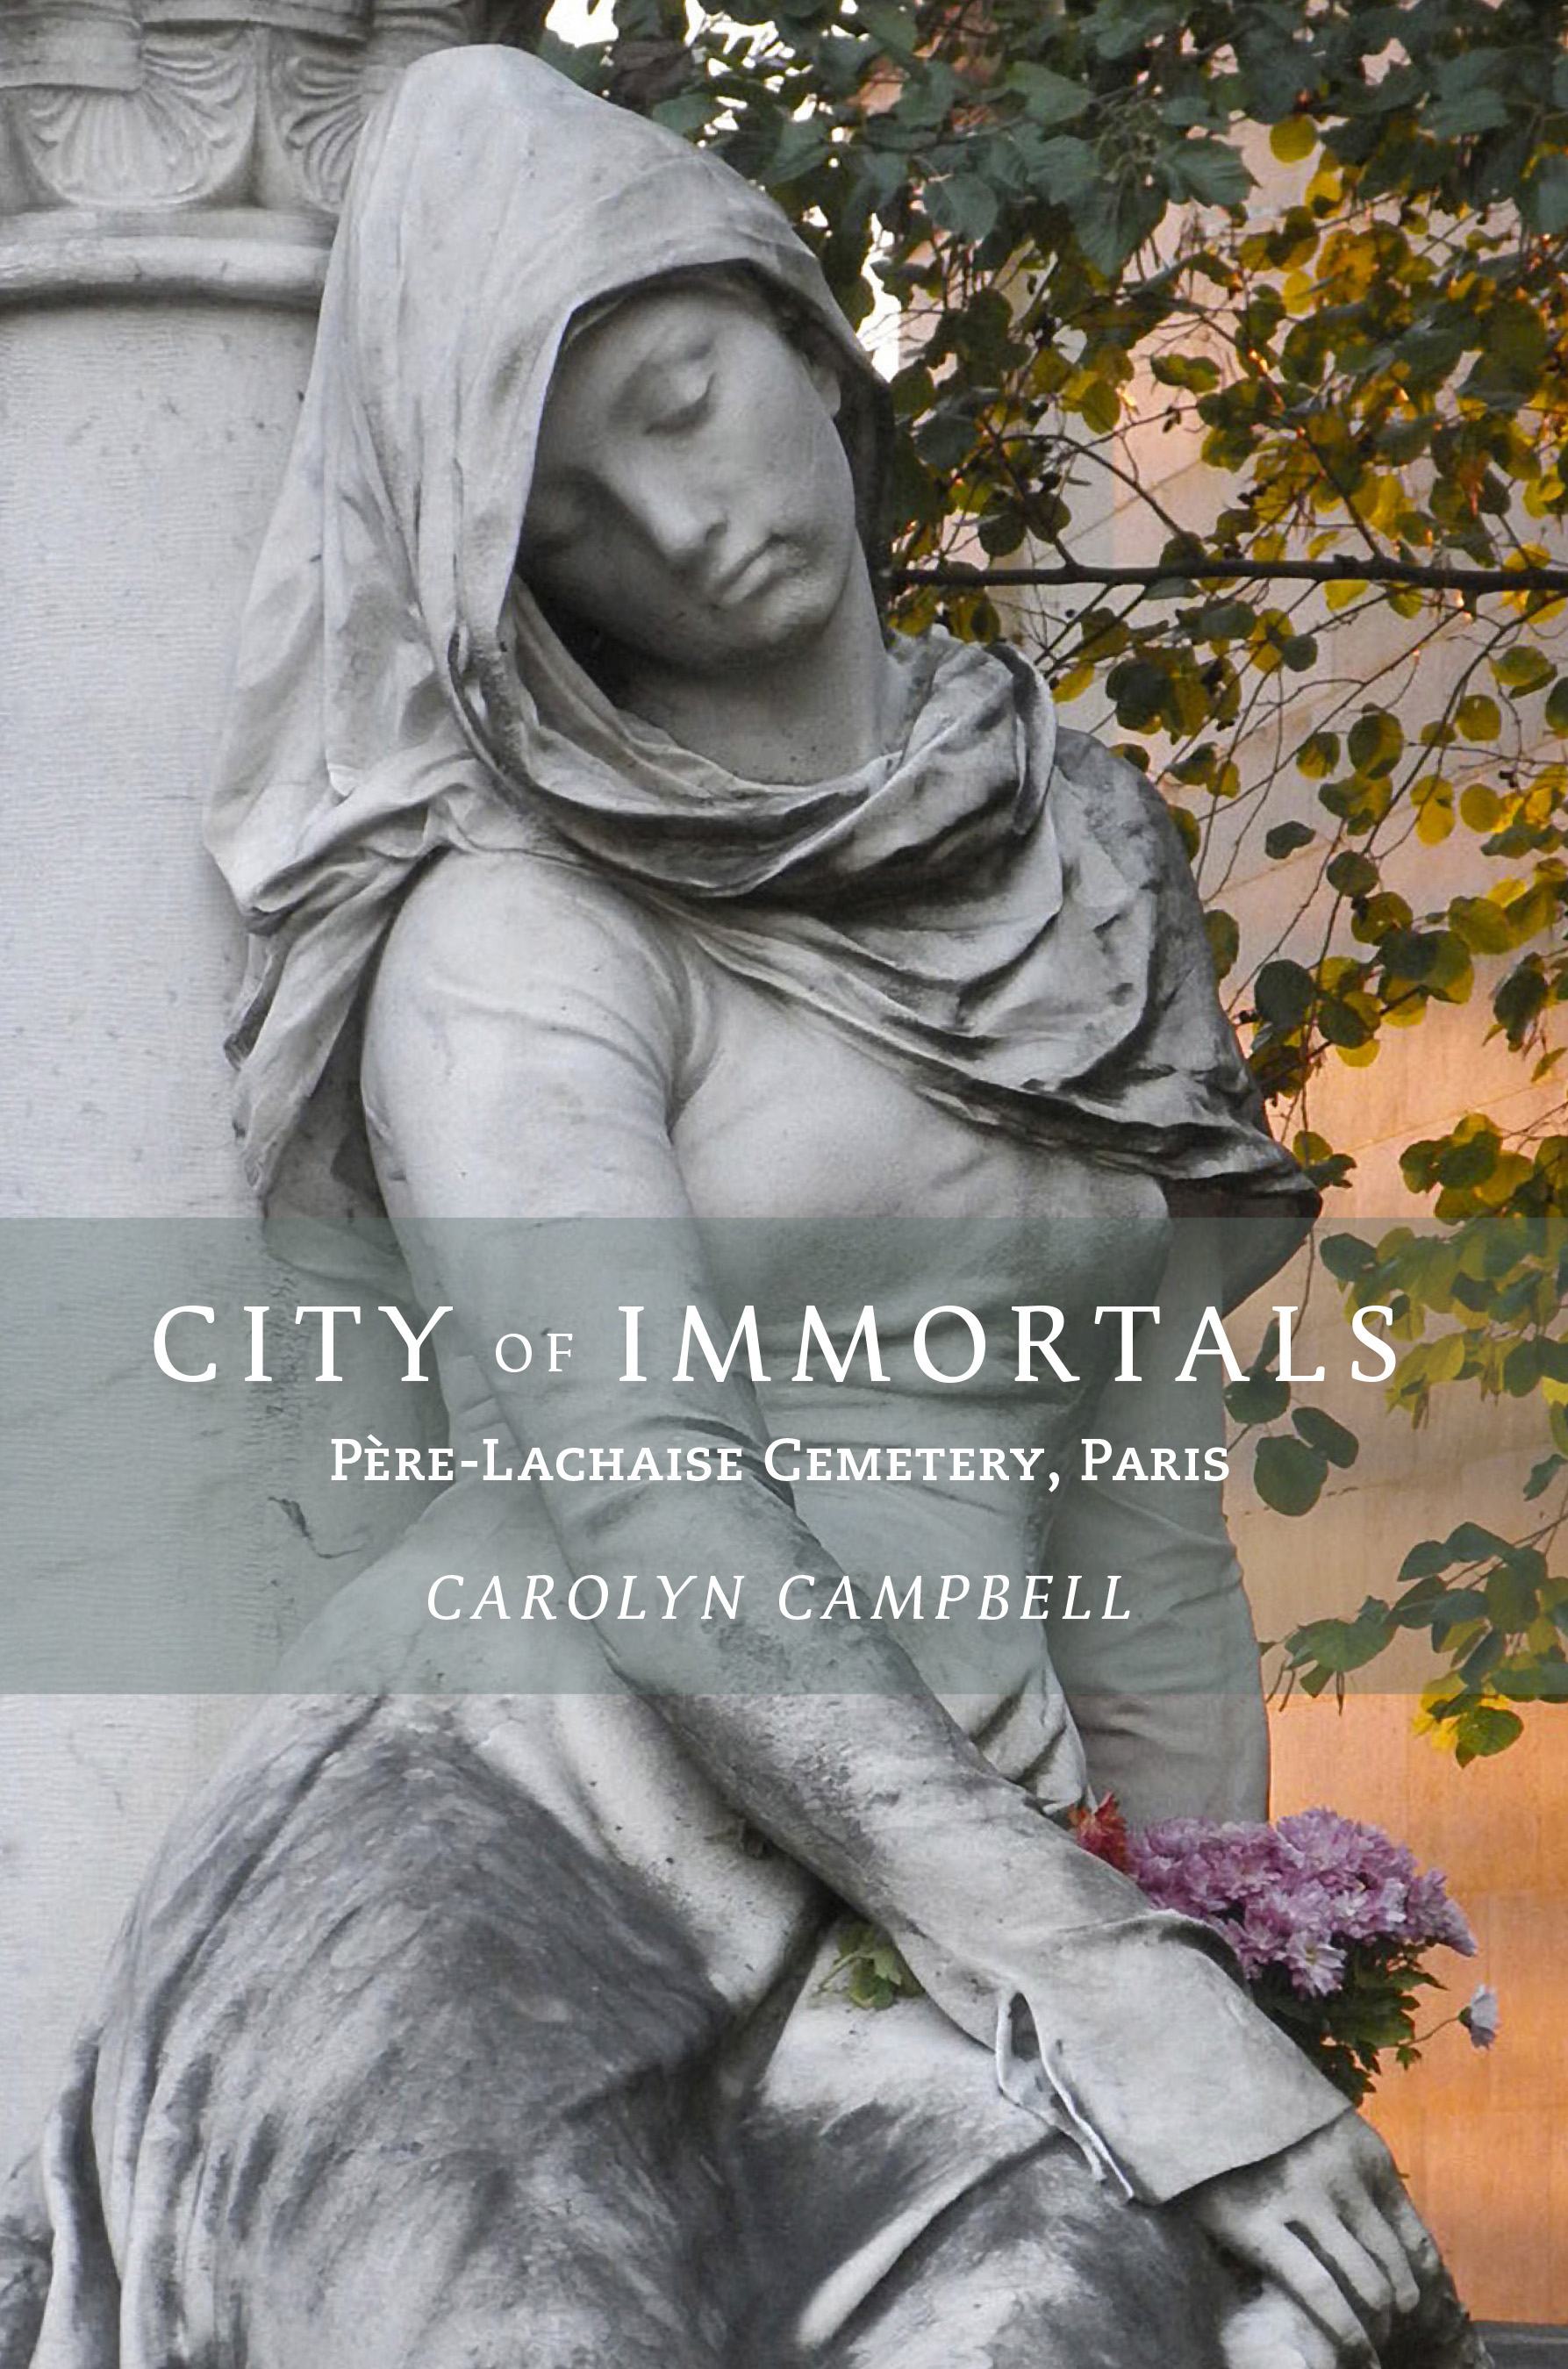 City of Immortals  FINAL FRONT  COVER 5 30 19